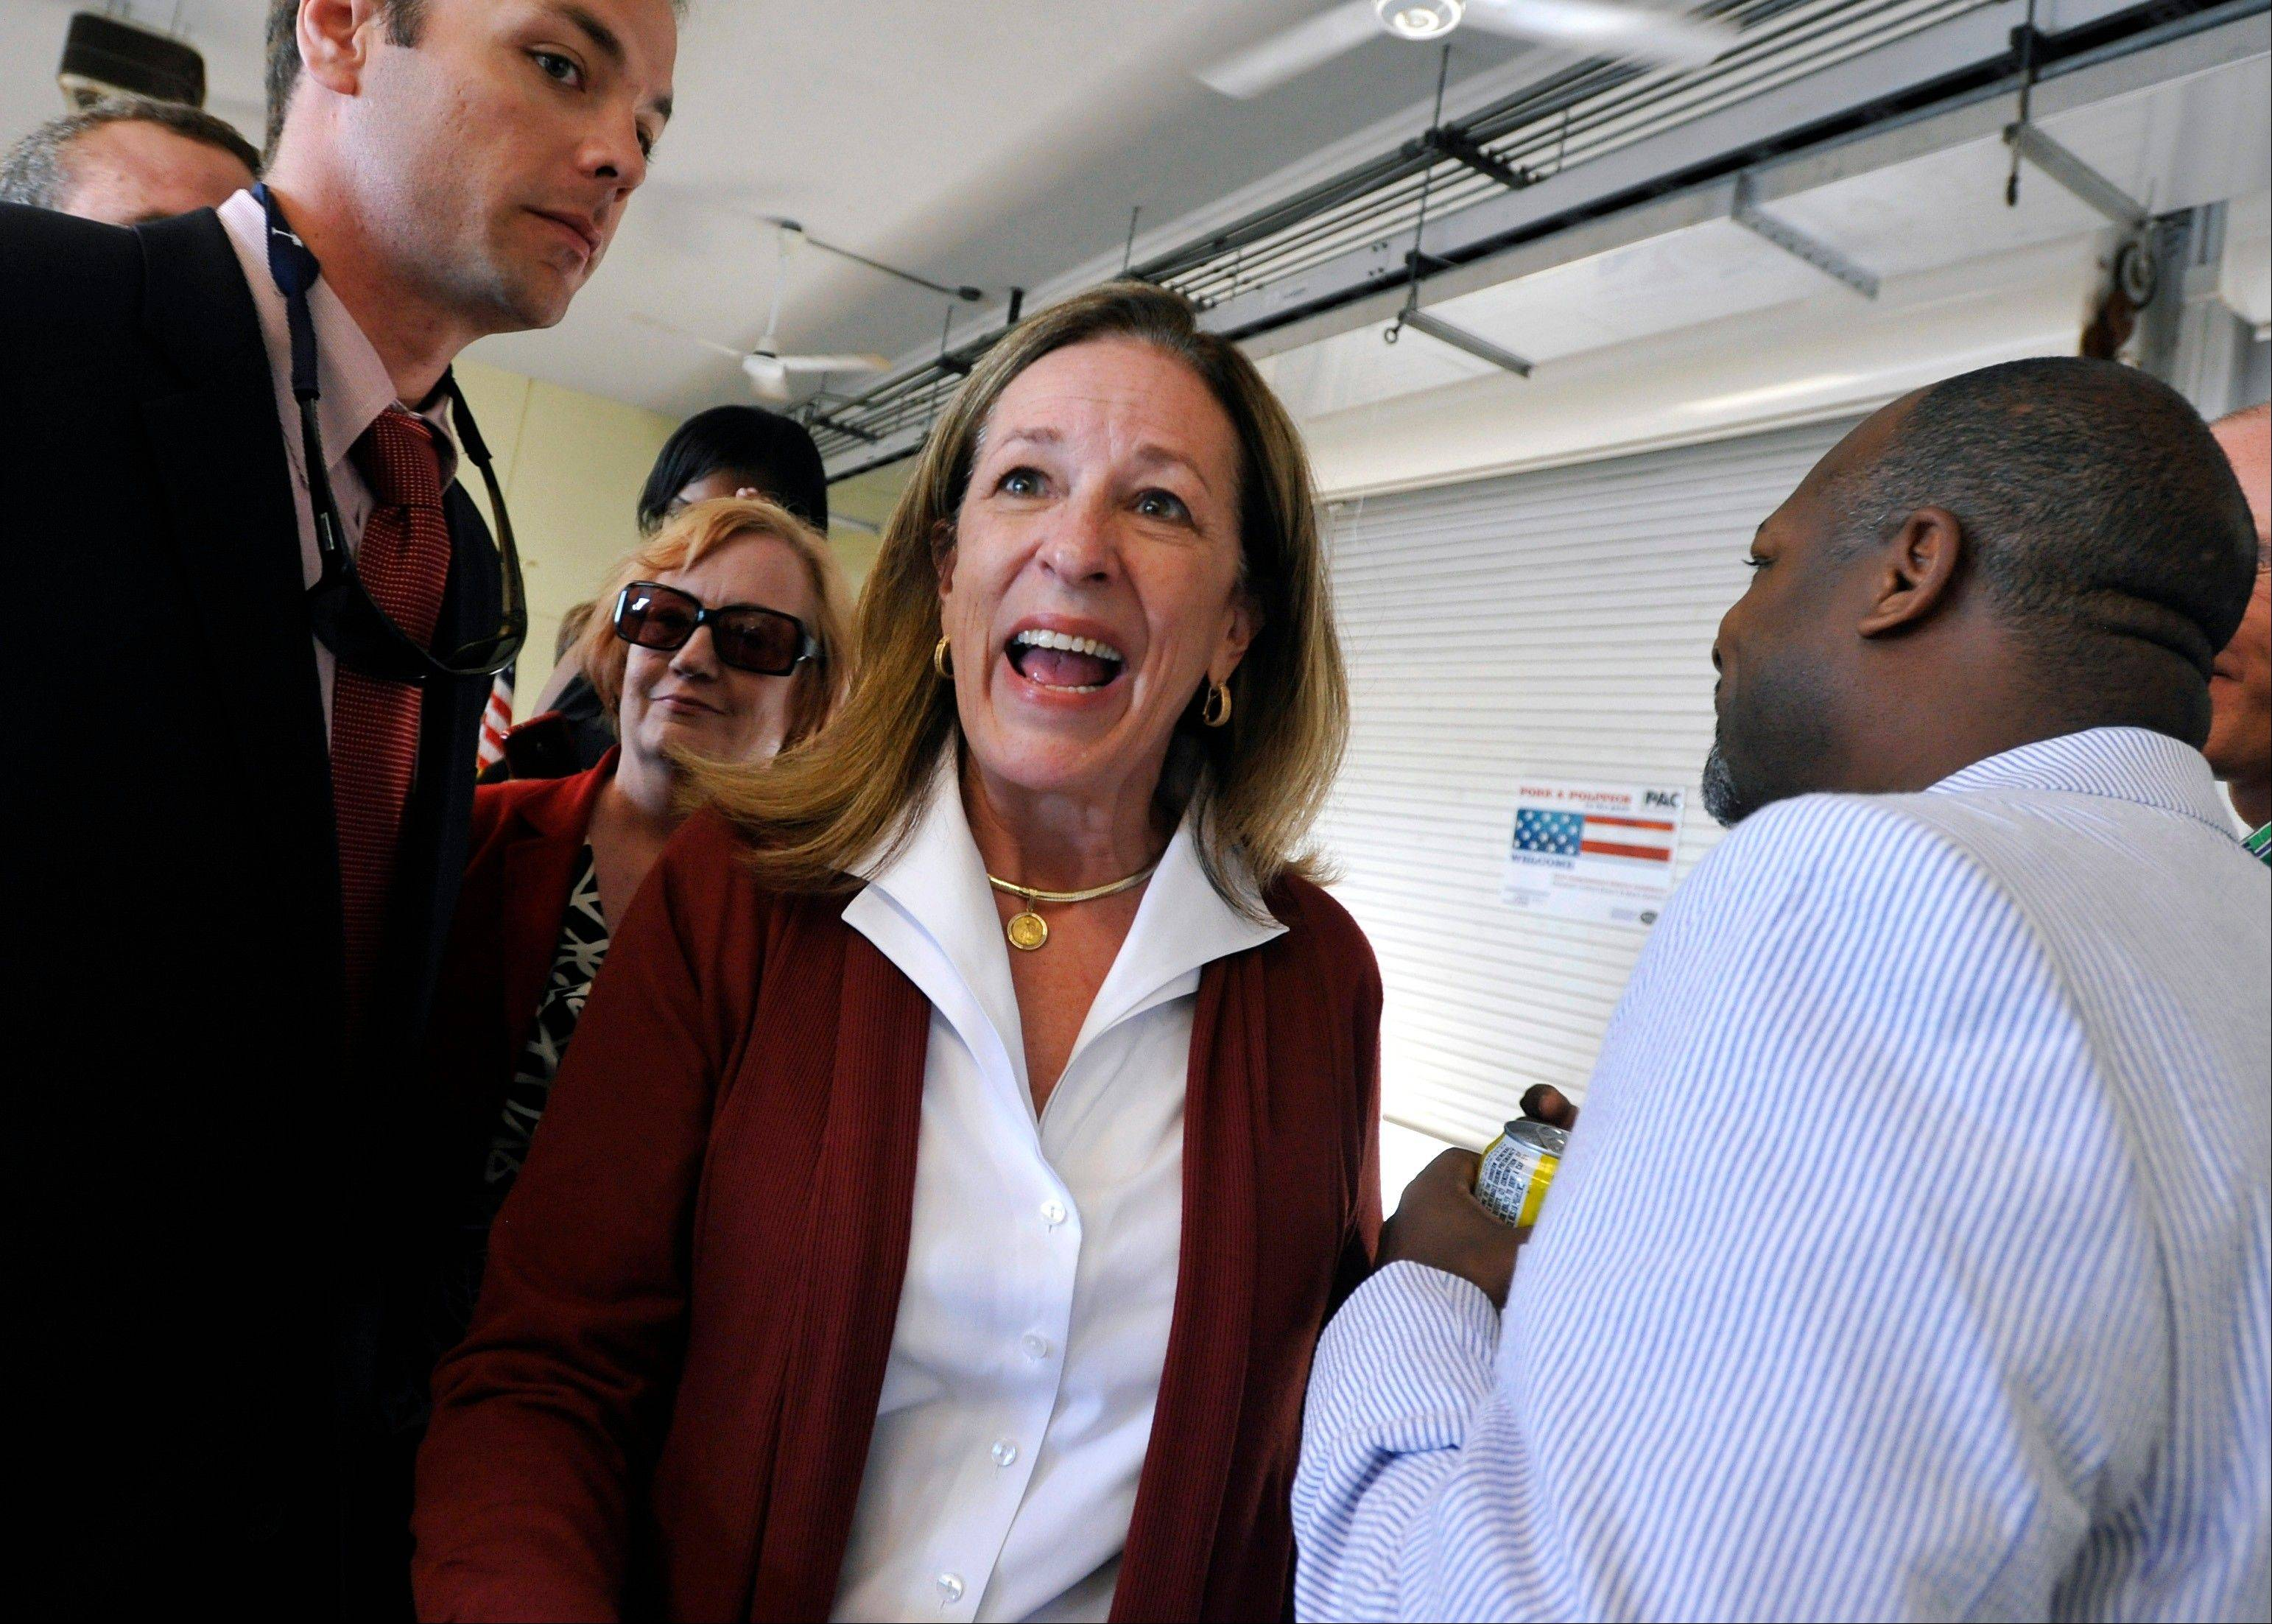 Associated Press Democratic candidate Elizabeth Colbert Busch, center, speaks with attendees Tuesday during a campaign stop at the Charleston Maritime Center in Charleston, S.C.